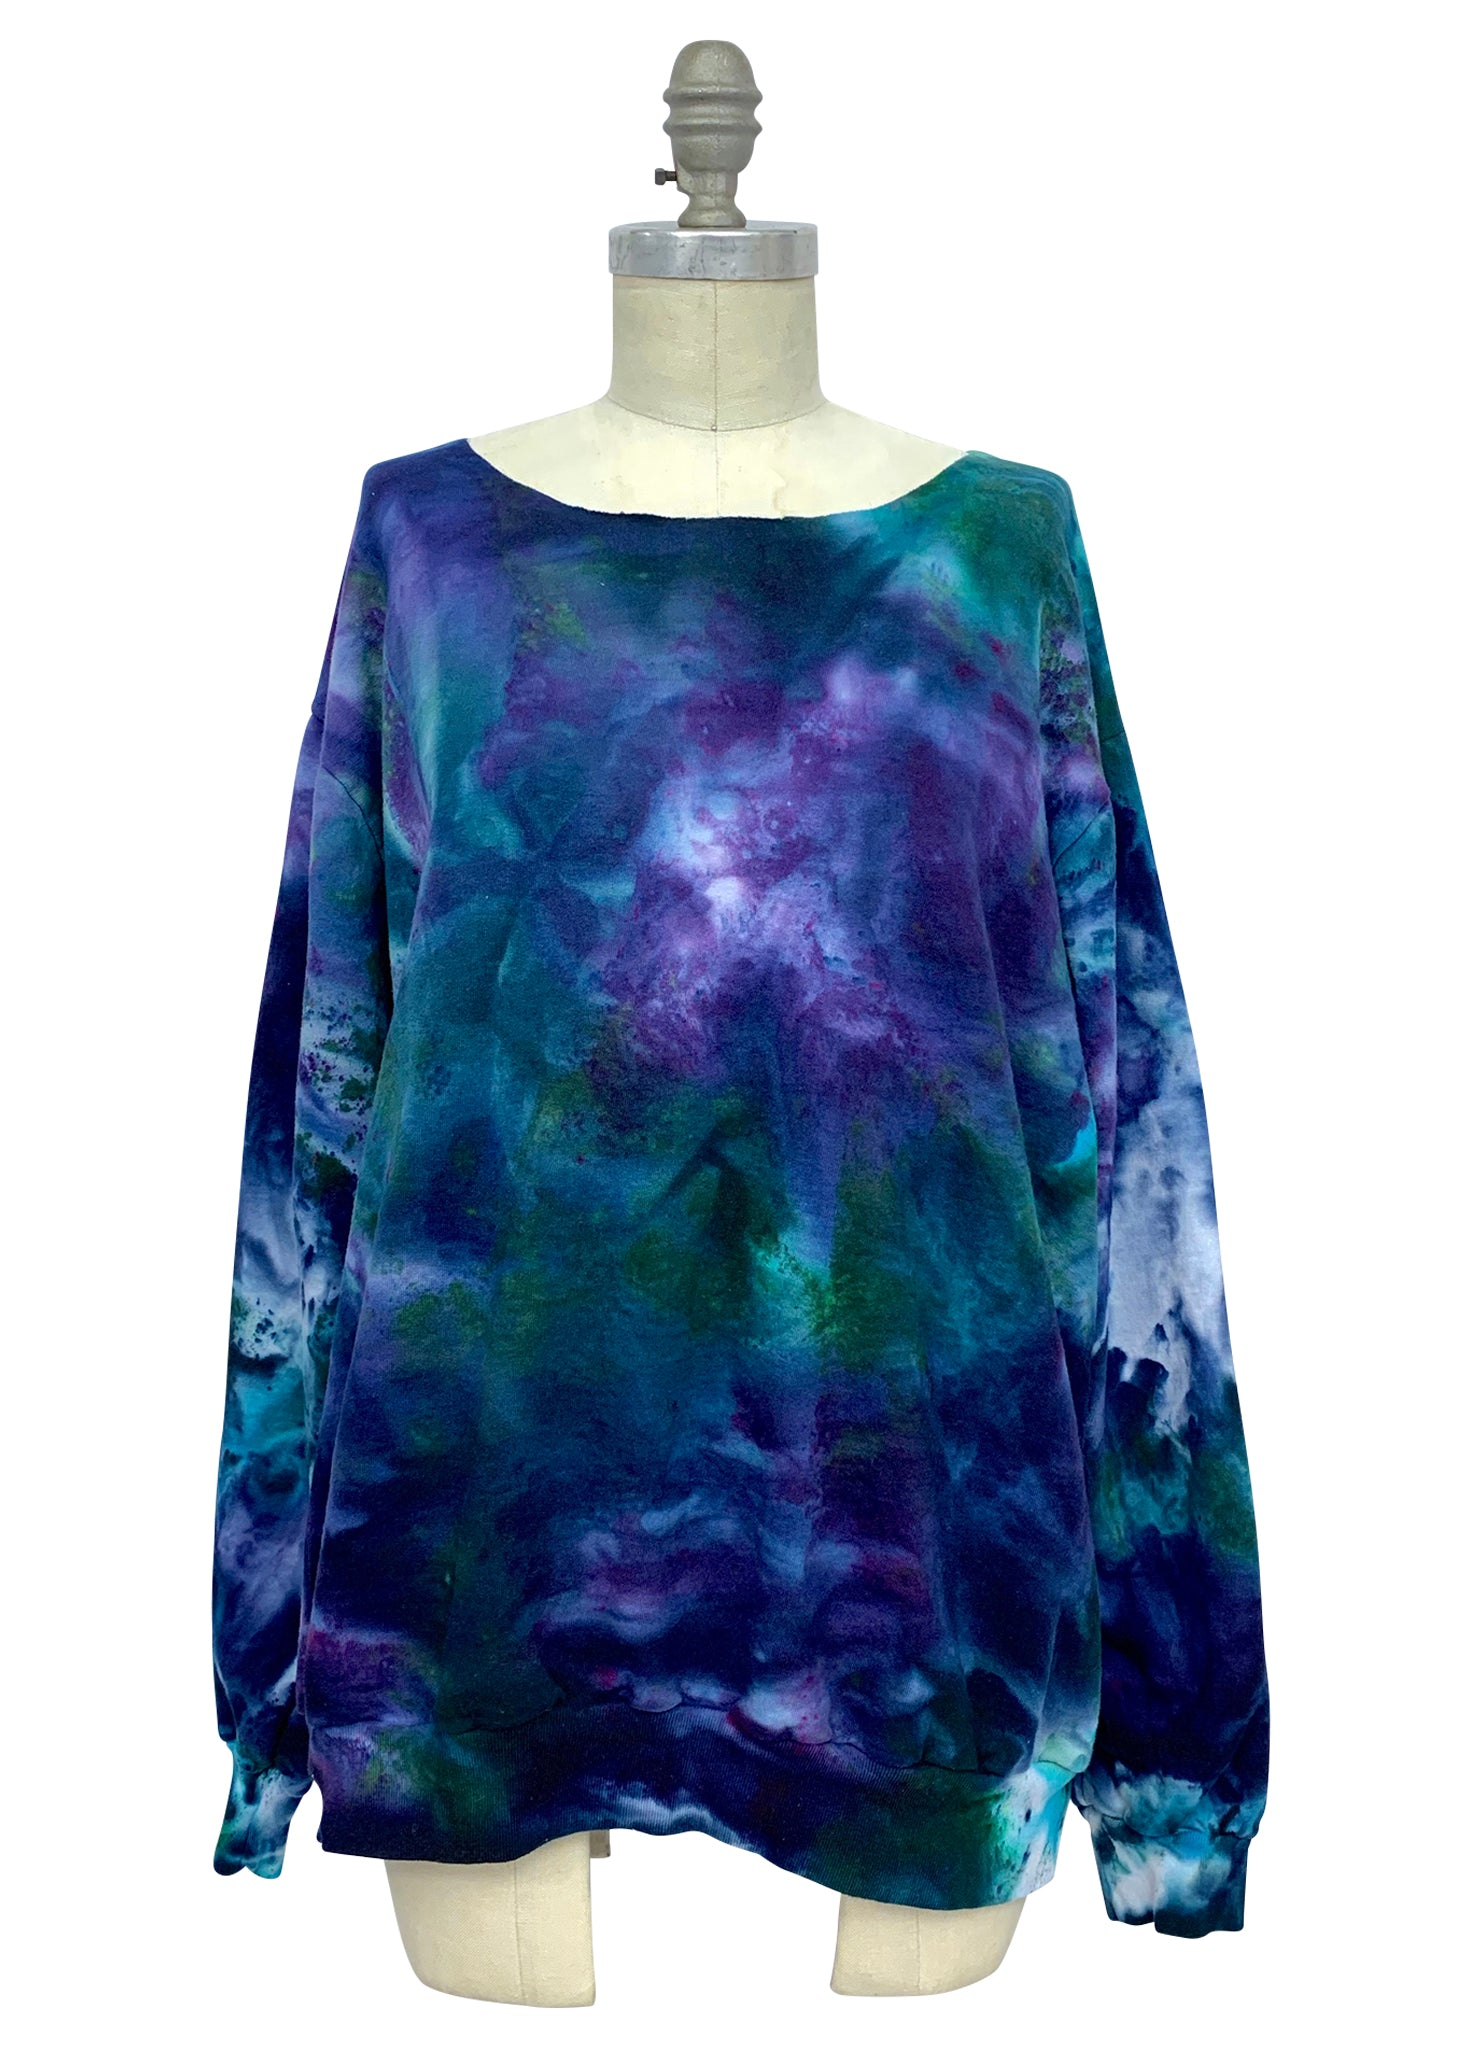 Hand Dyed Perfect Sweatshirt in Teals & Purples - Limited Release - Dyetology